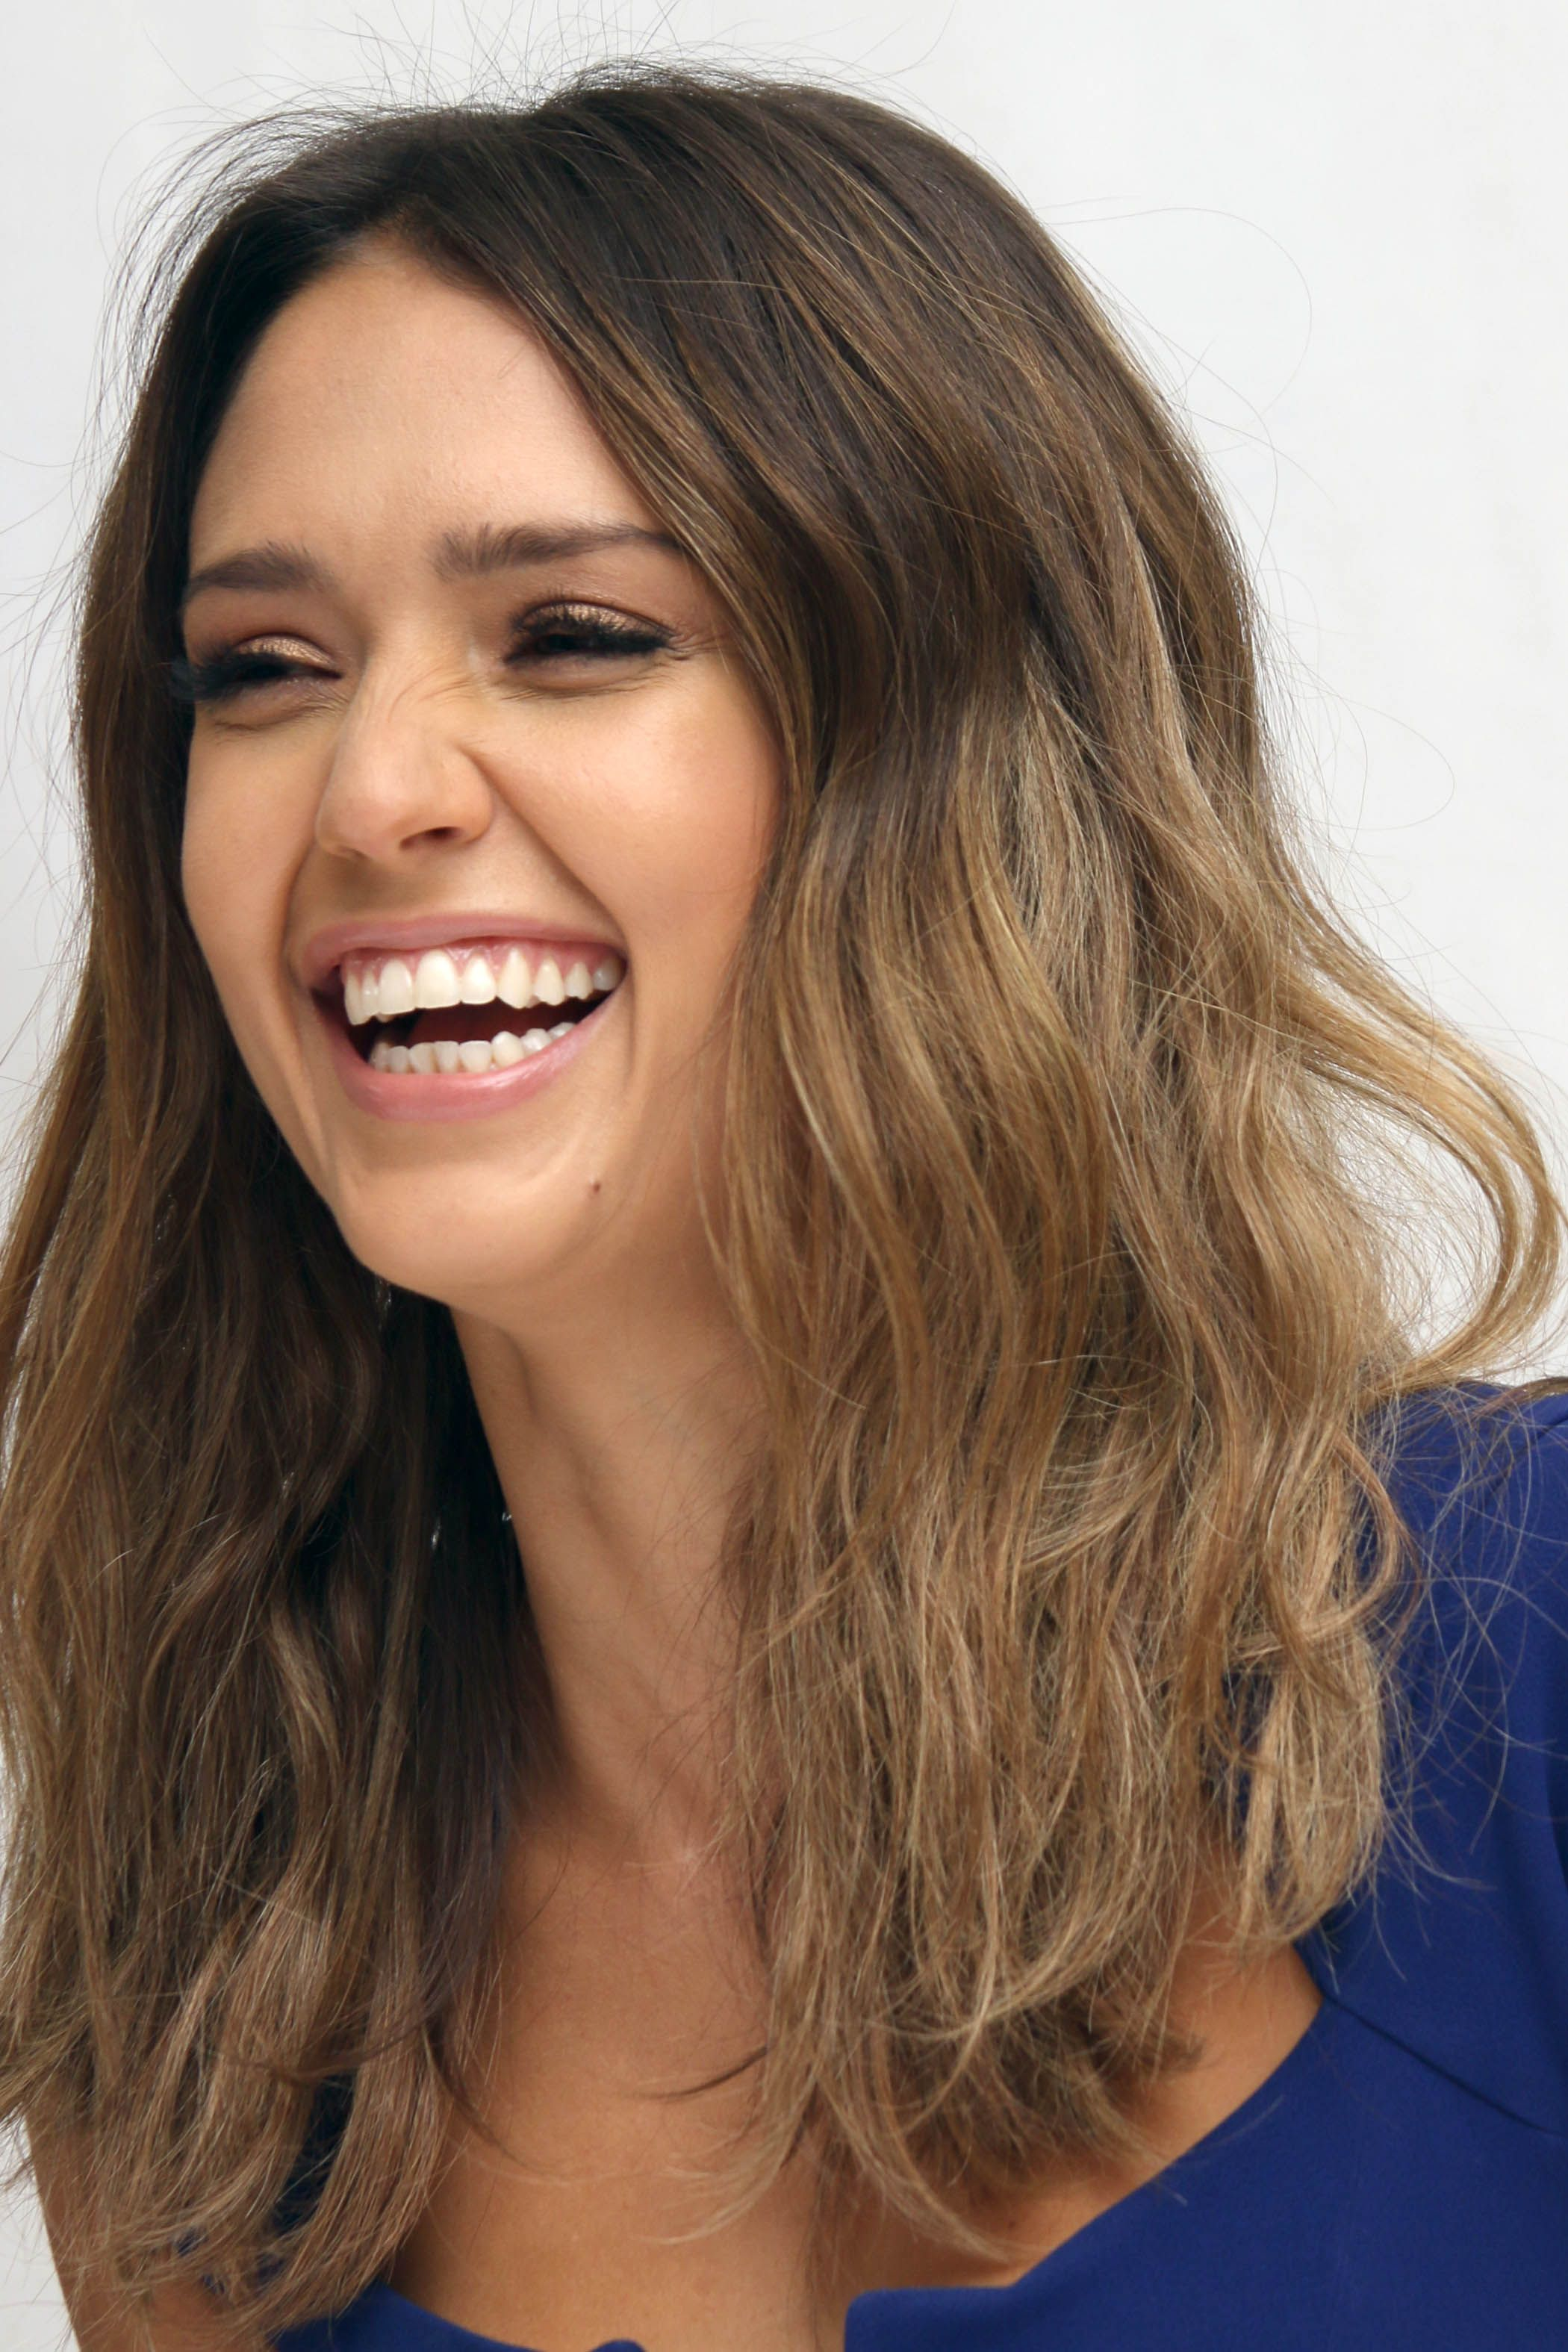 Jessica_Alba___Sin_City_A_Dame_to_Kill_For_press_conference_portraits_by_Munawar_Hosain_06.jpg Click image to close this window